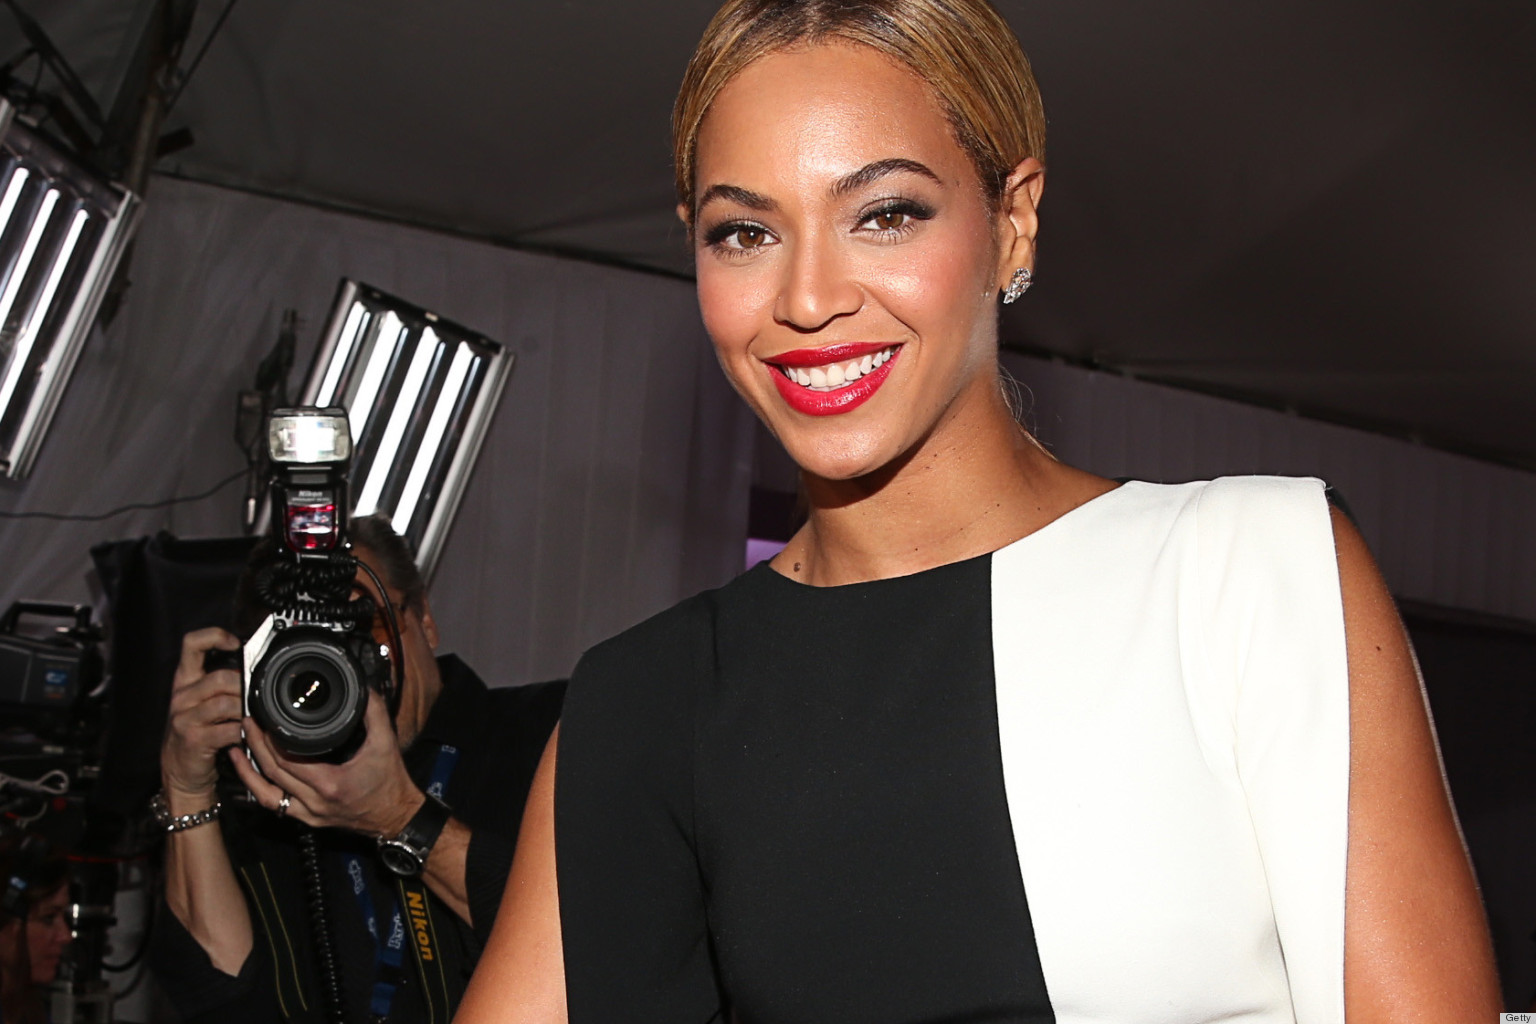 PHOTOS: Beyonce Joins The Ranks Of '90s Supermodels On Mrs. Carter Show World Tour